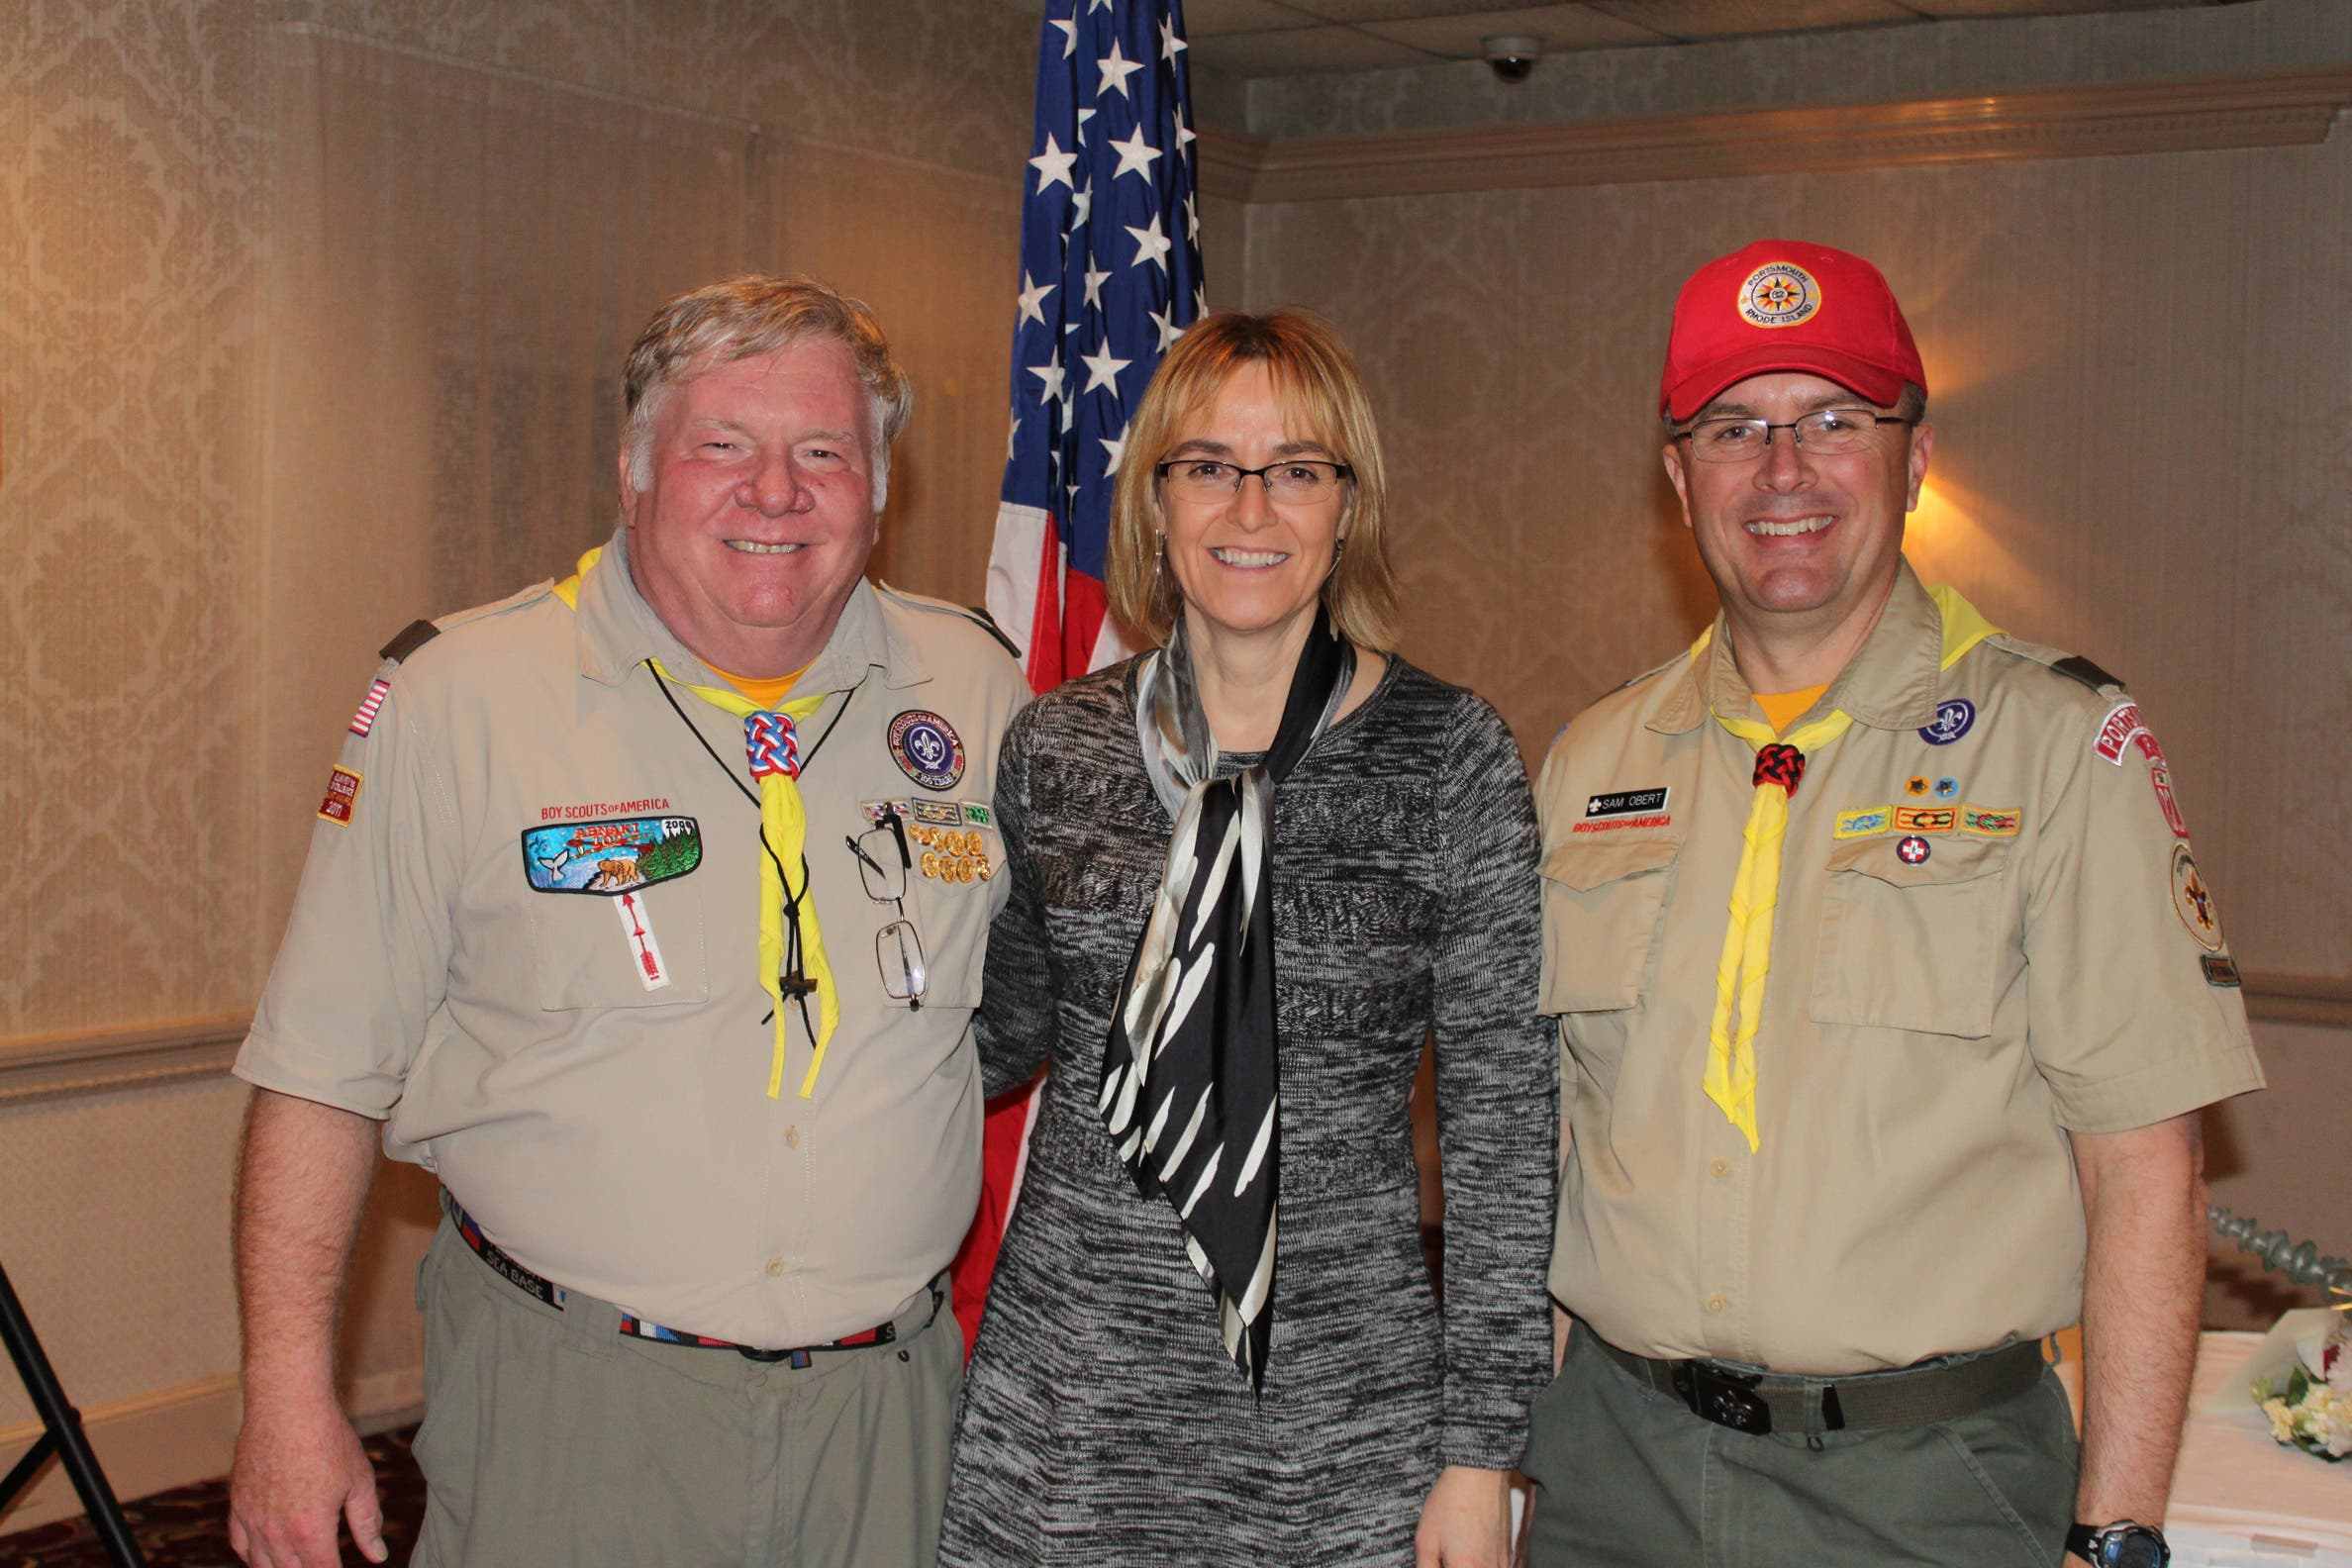 Boy Scout Troop 82 Begins New Chapter in 51 Year History